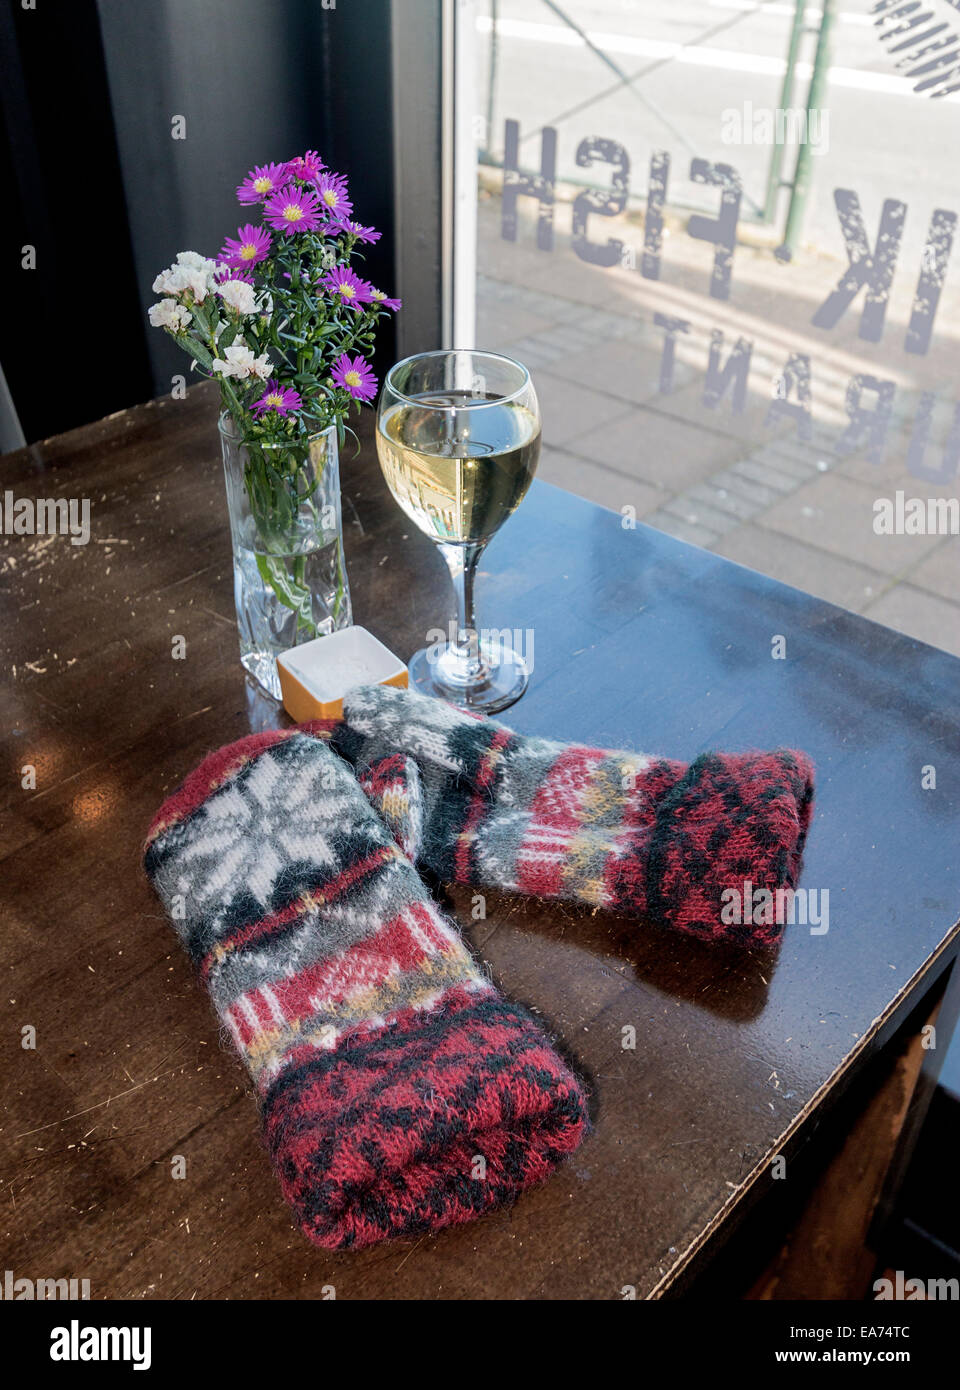 Wool Icelandic mittens, a glass of wine and flowers in a local restaurant in Reykjavik, Iceland. - Stock Image